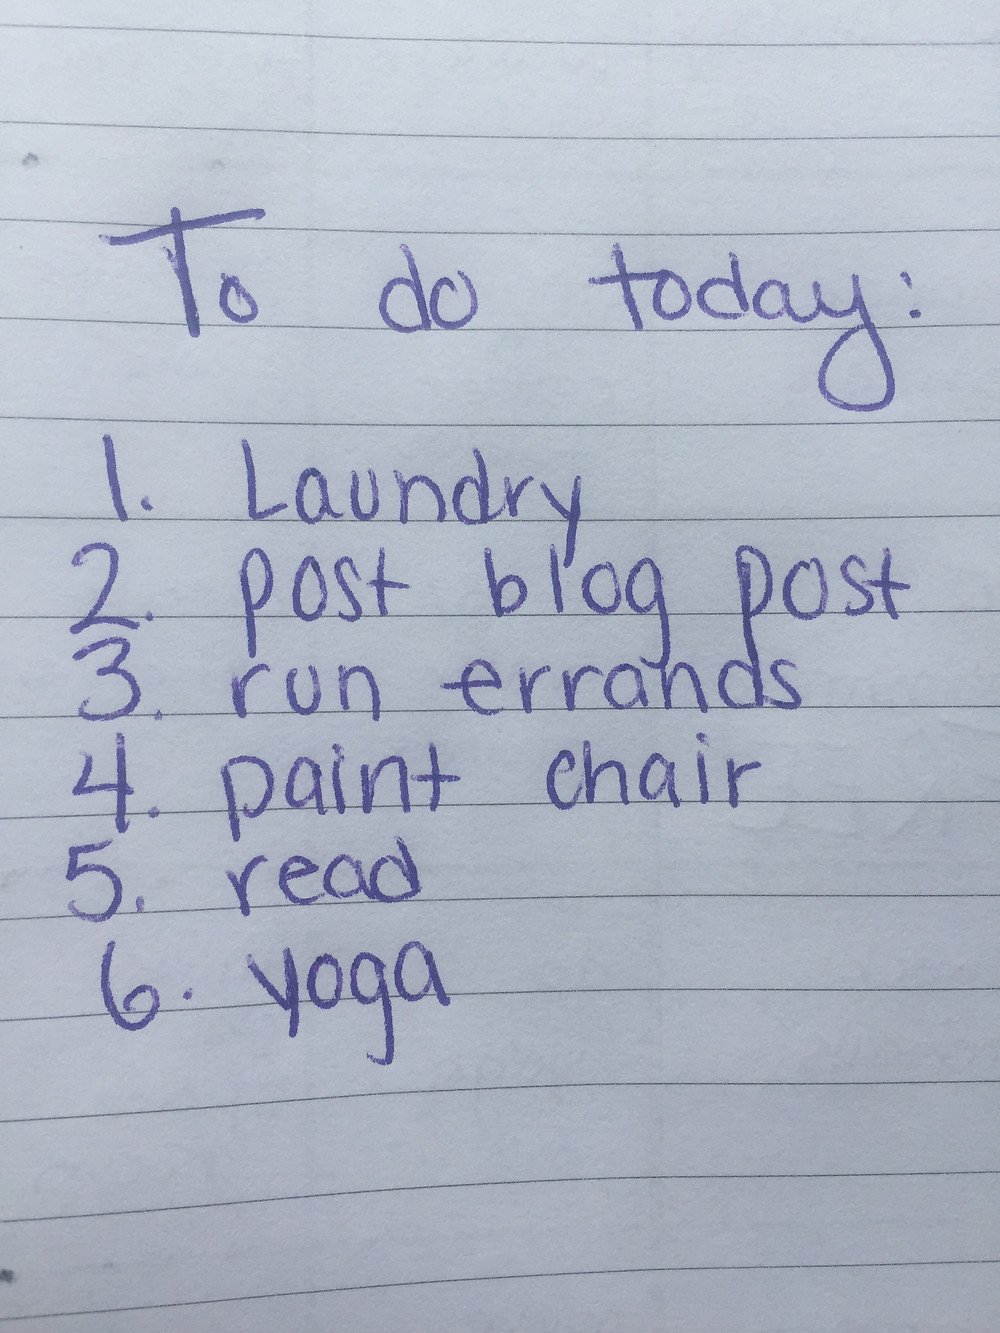 A to do list of 6 items